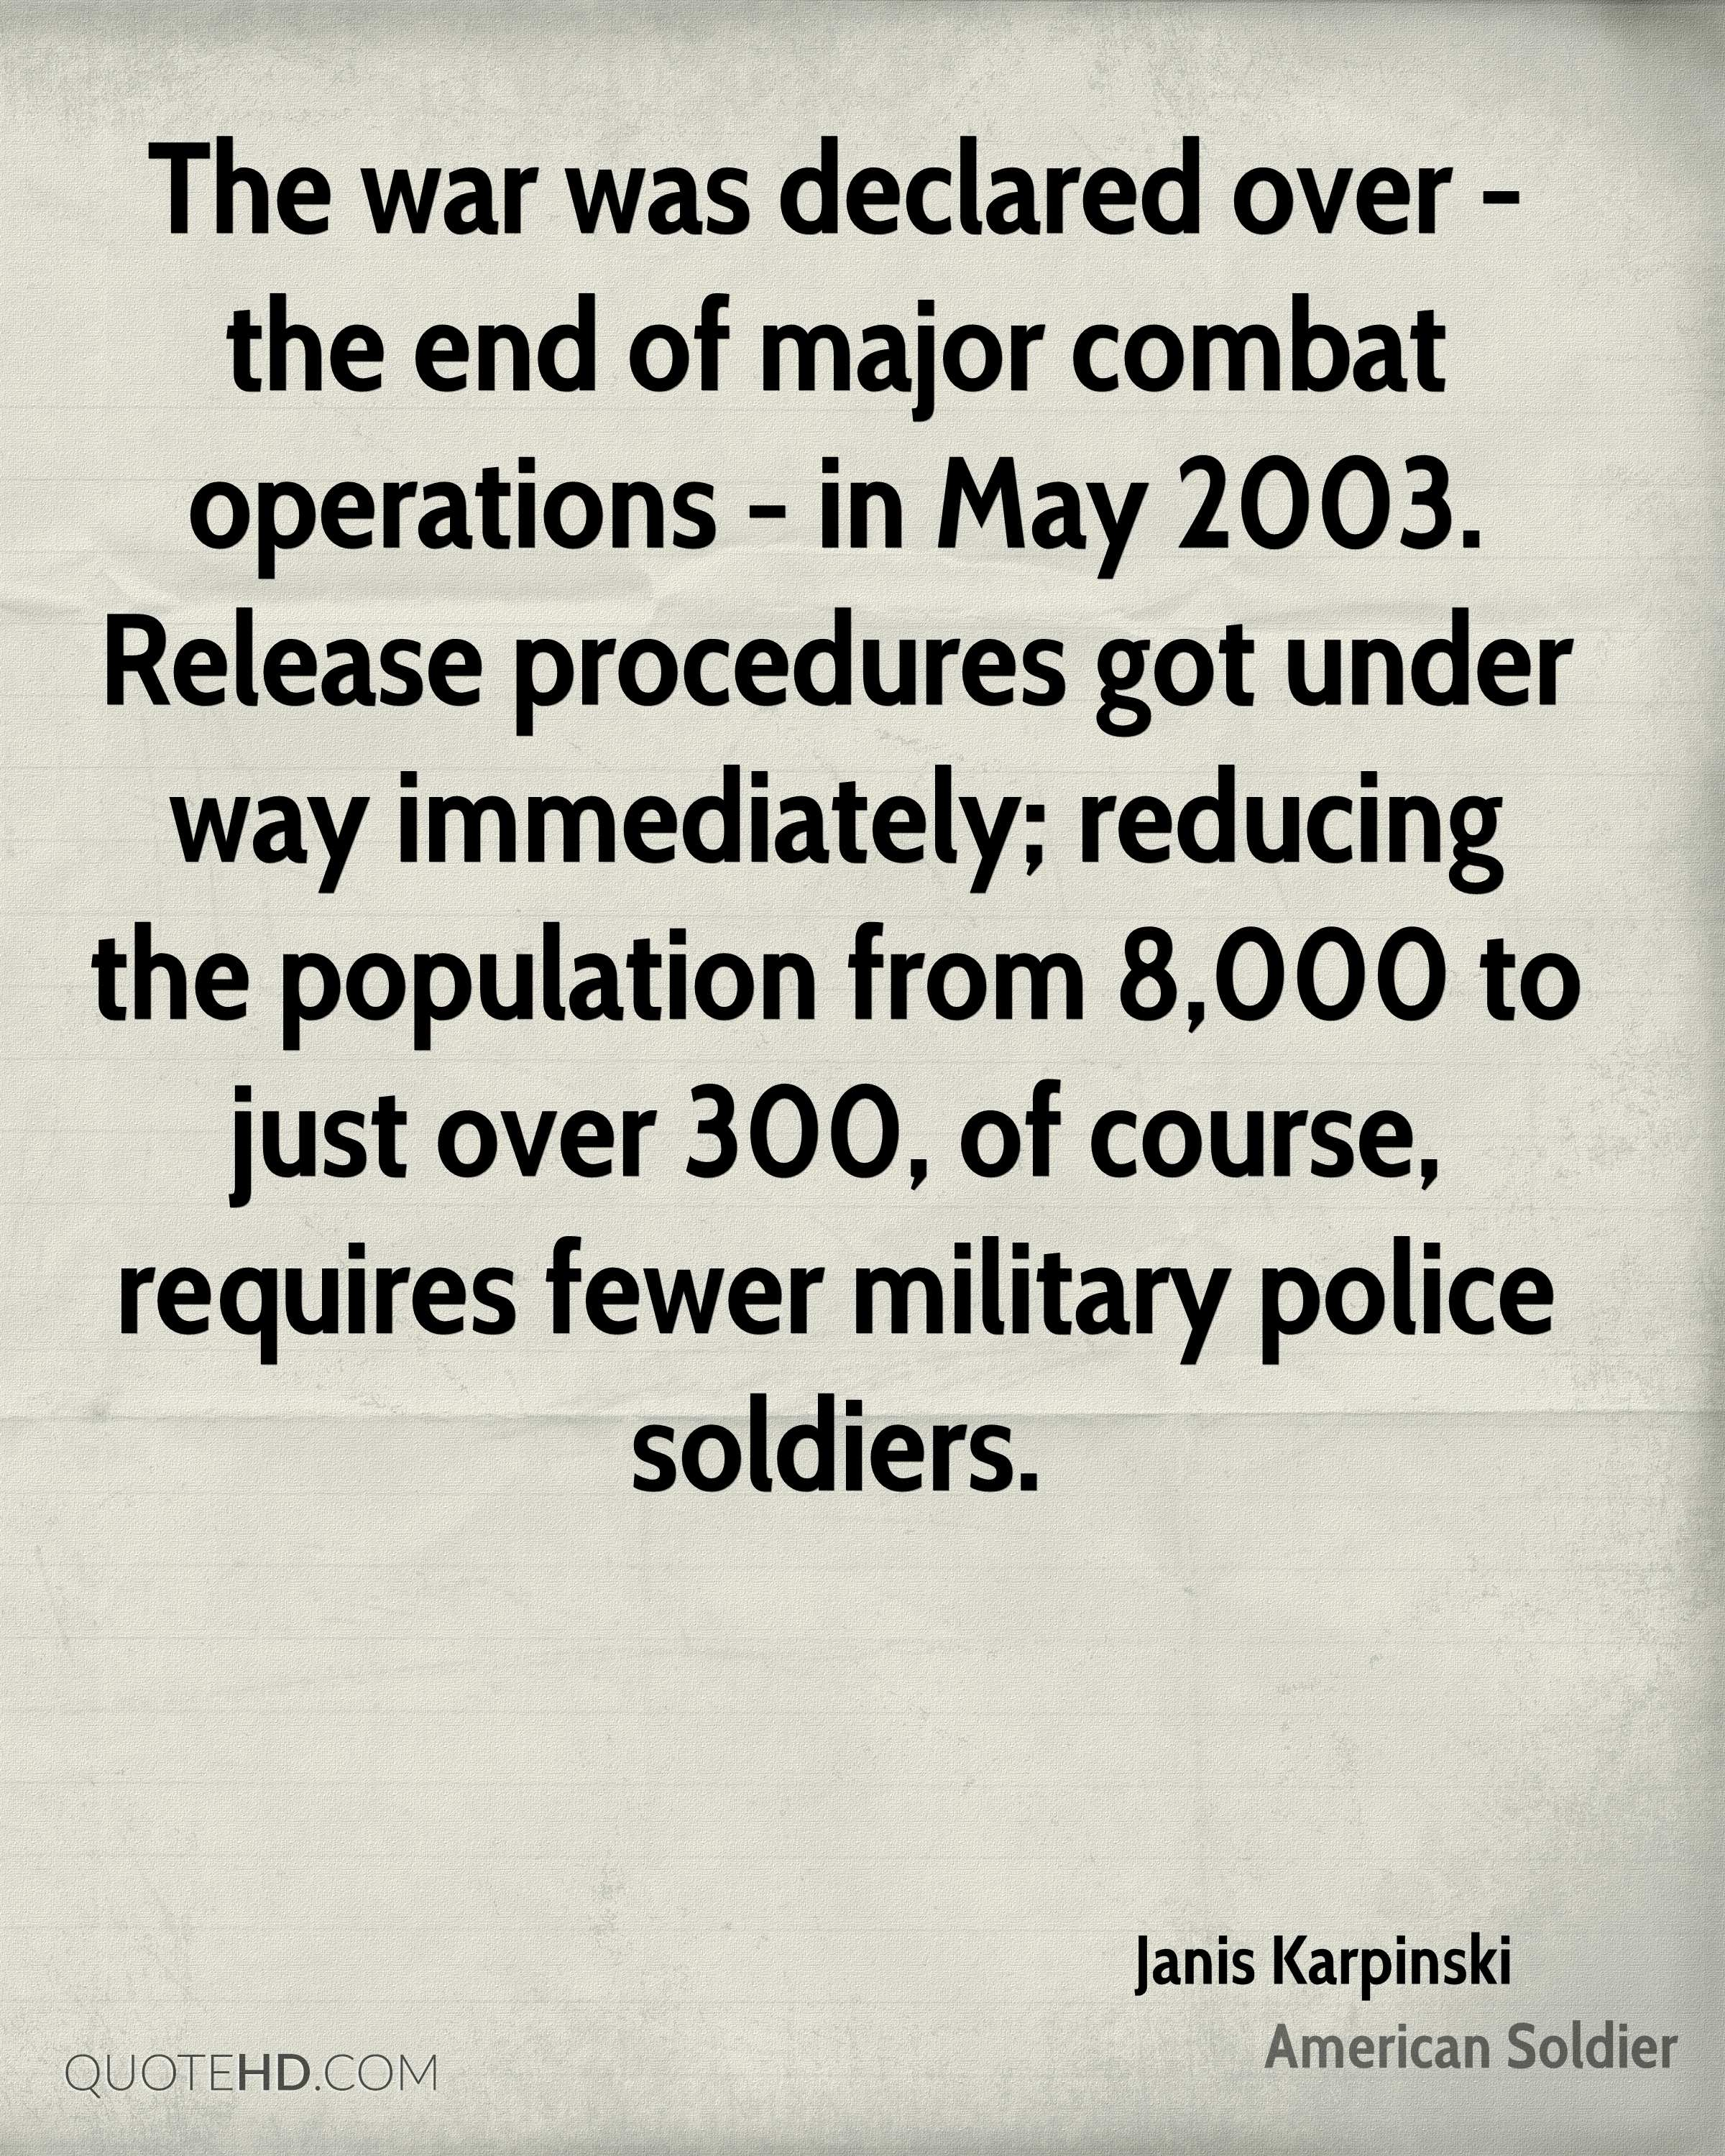 The war was declared over - the end of major combat operations - in May 2003. Release procedures got under way immediately; reducing the population from 8,000 to just over 300, of course, requires fewer military police soldiers.